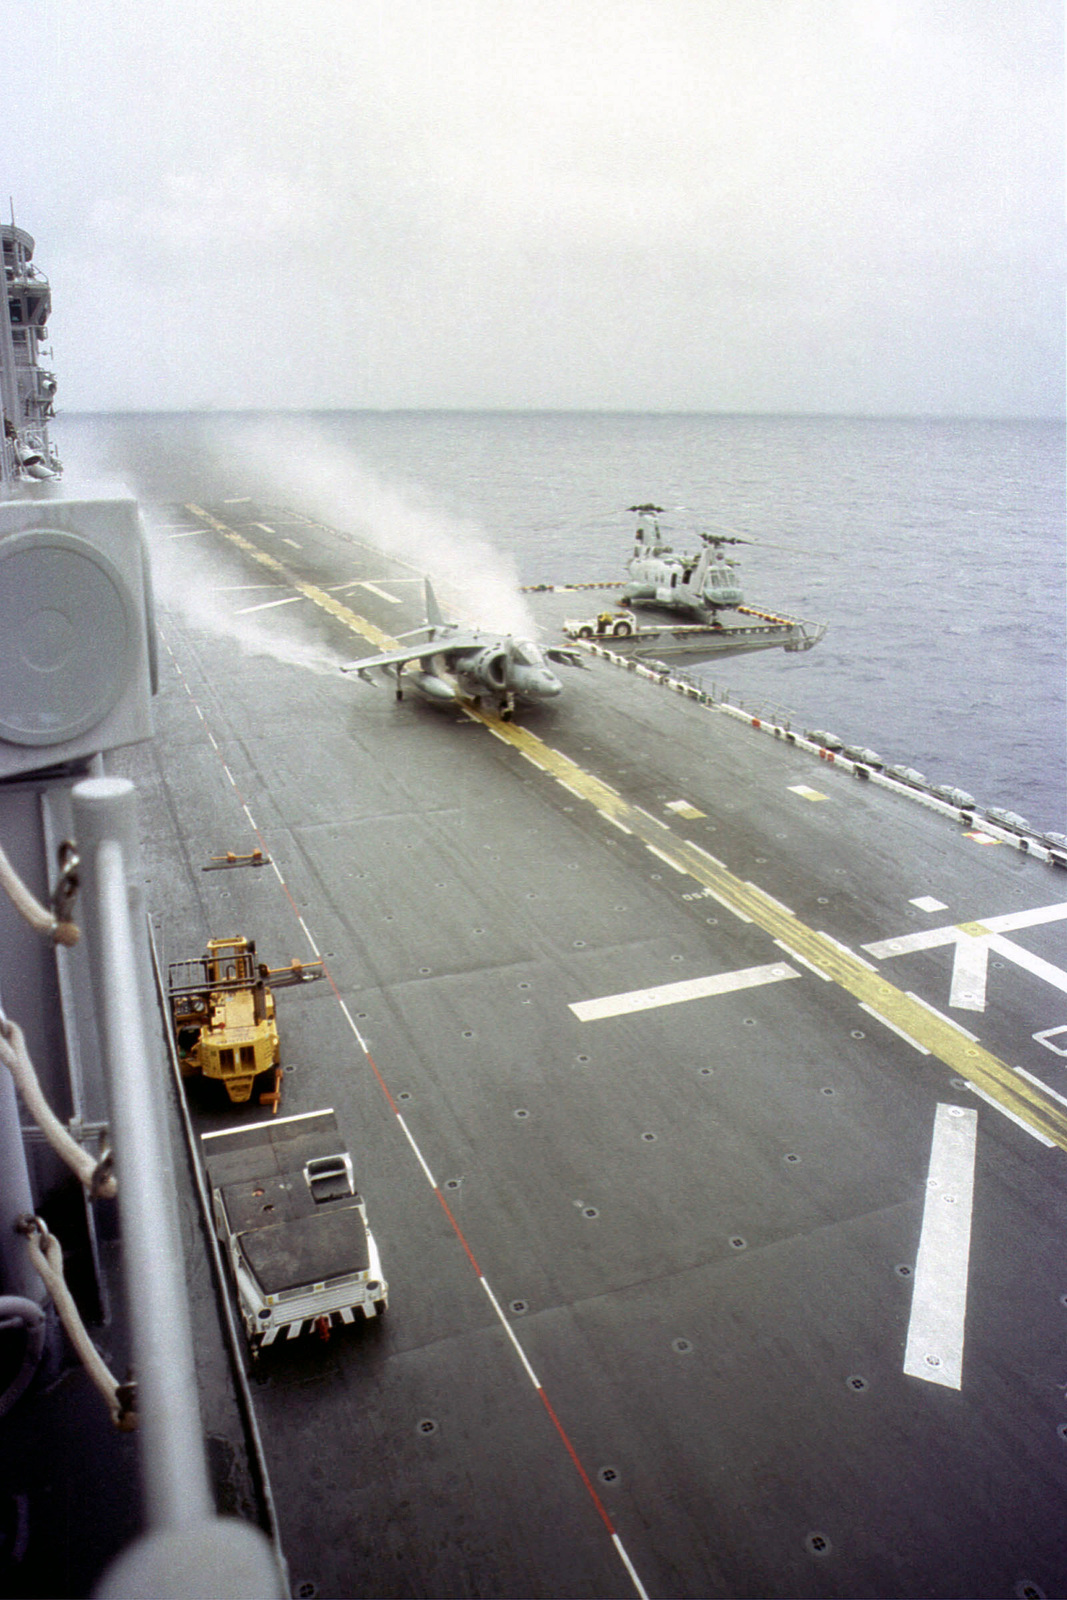 A US Marine Corps AV-8B Harrier from Marine Medium Helicopter Squadron 364 (Reinforced) (HMM-364), 13th Marine Expeditionary Unit (MEU), Special Operations Capable (SOC) takes off from the flight deck of the USS BOXER (LHD 4) during routine flight operations. A CH-46E Sea Knight is parked on elevator. Western Pacific deployment, WestPac 99-1